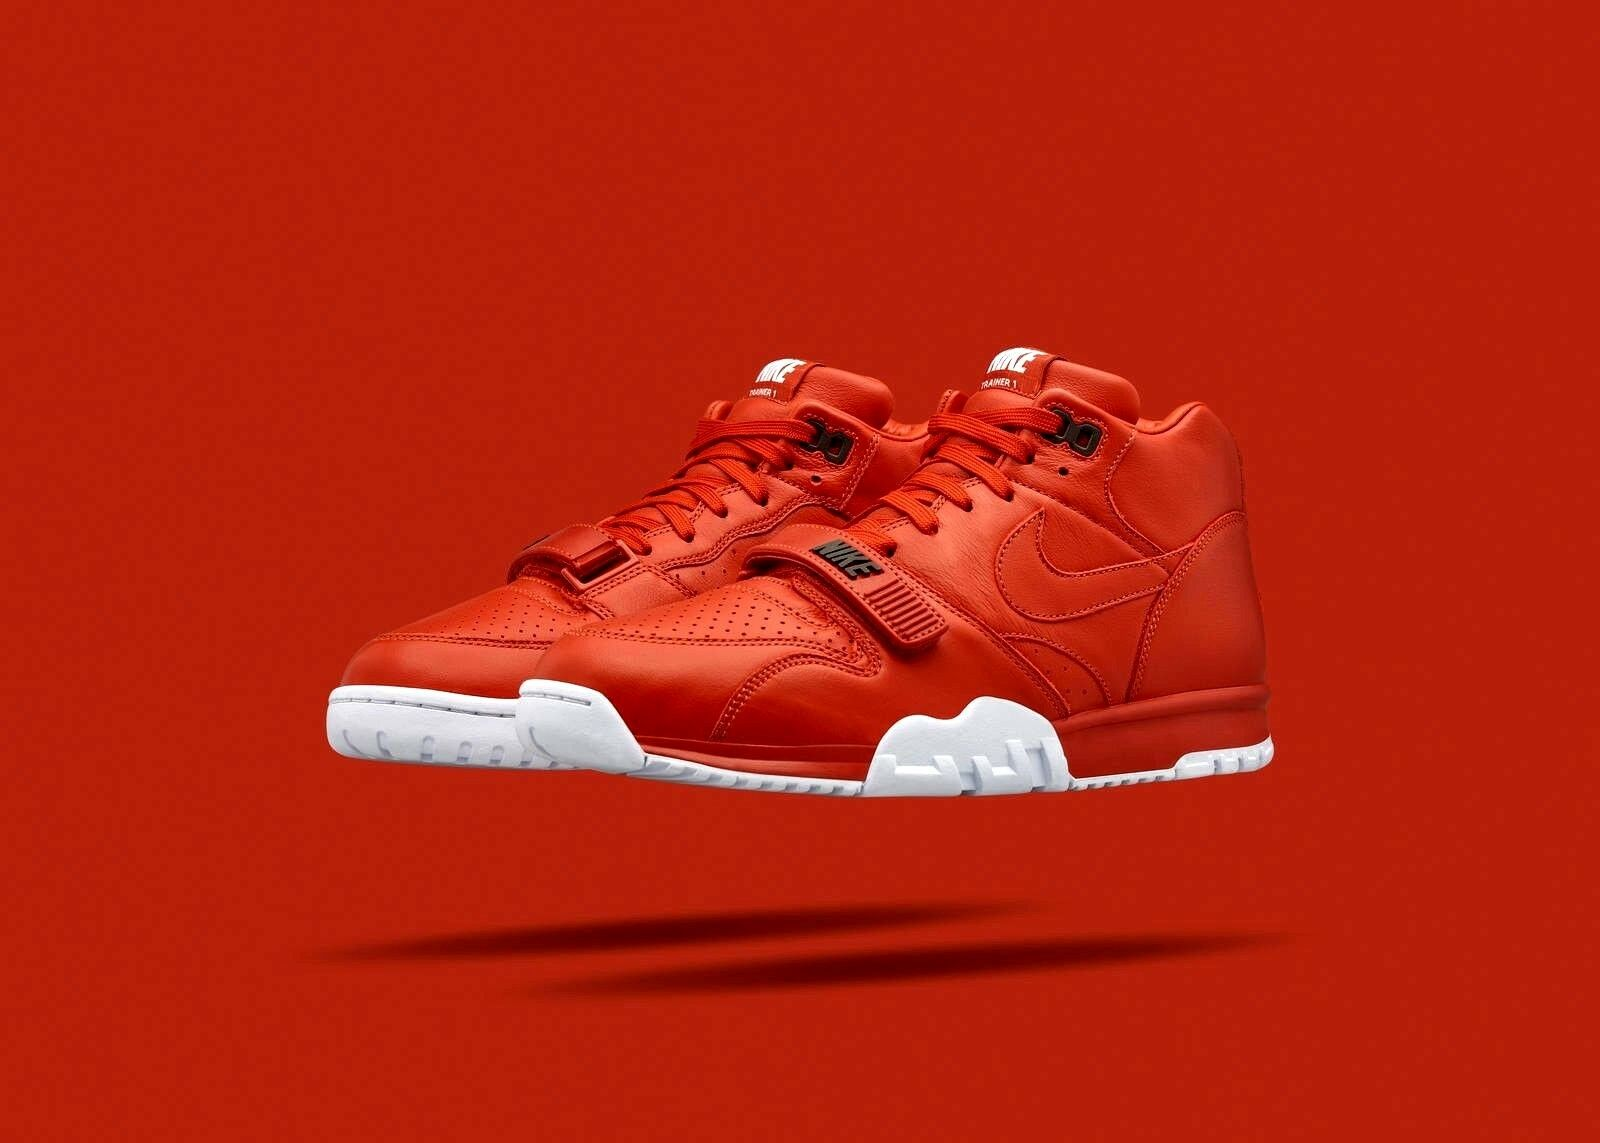 Nike Air Trainer 1 Mid Rust Red 10.5 Bo Jackson Max 90 95 97 I 180 3 force 270